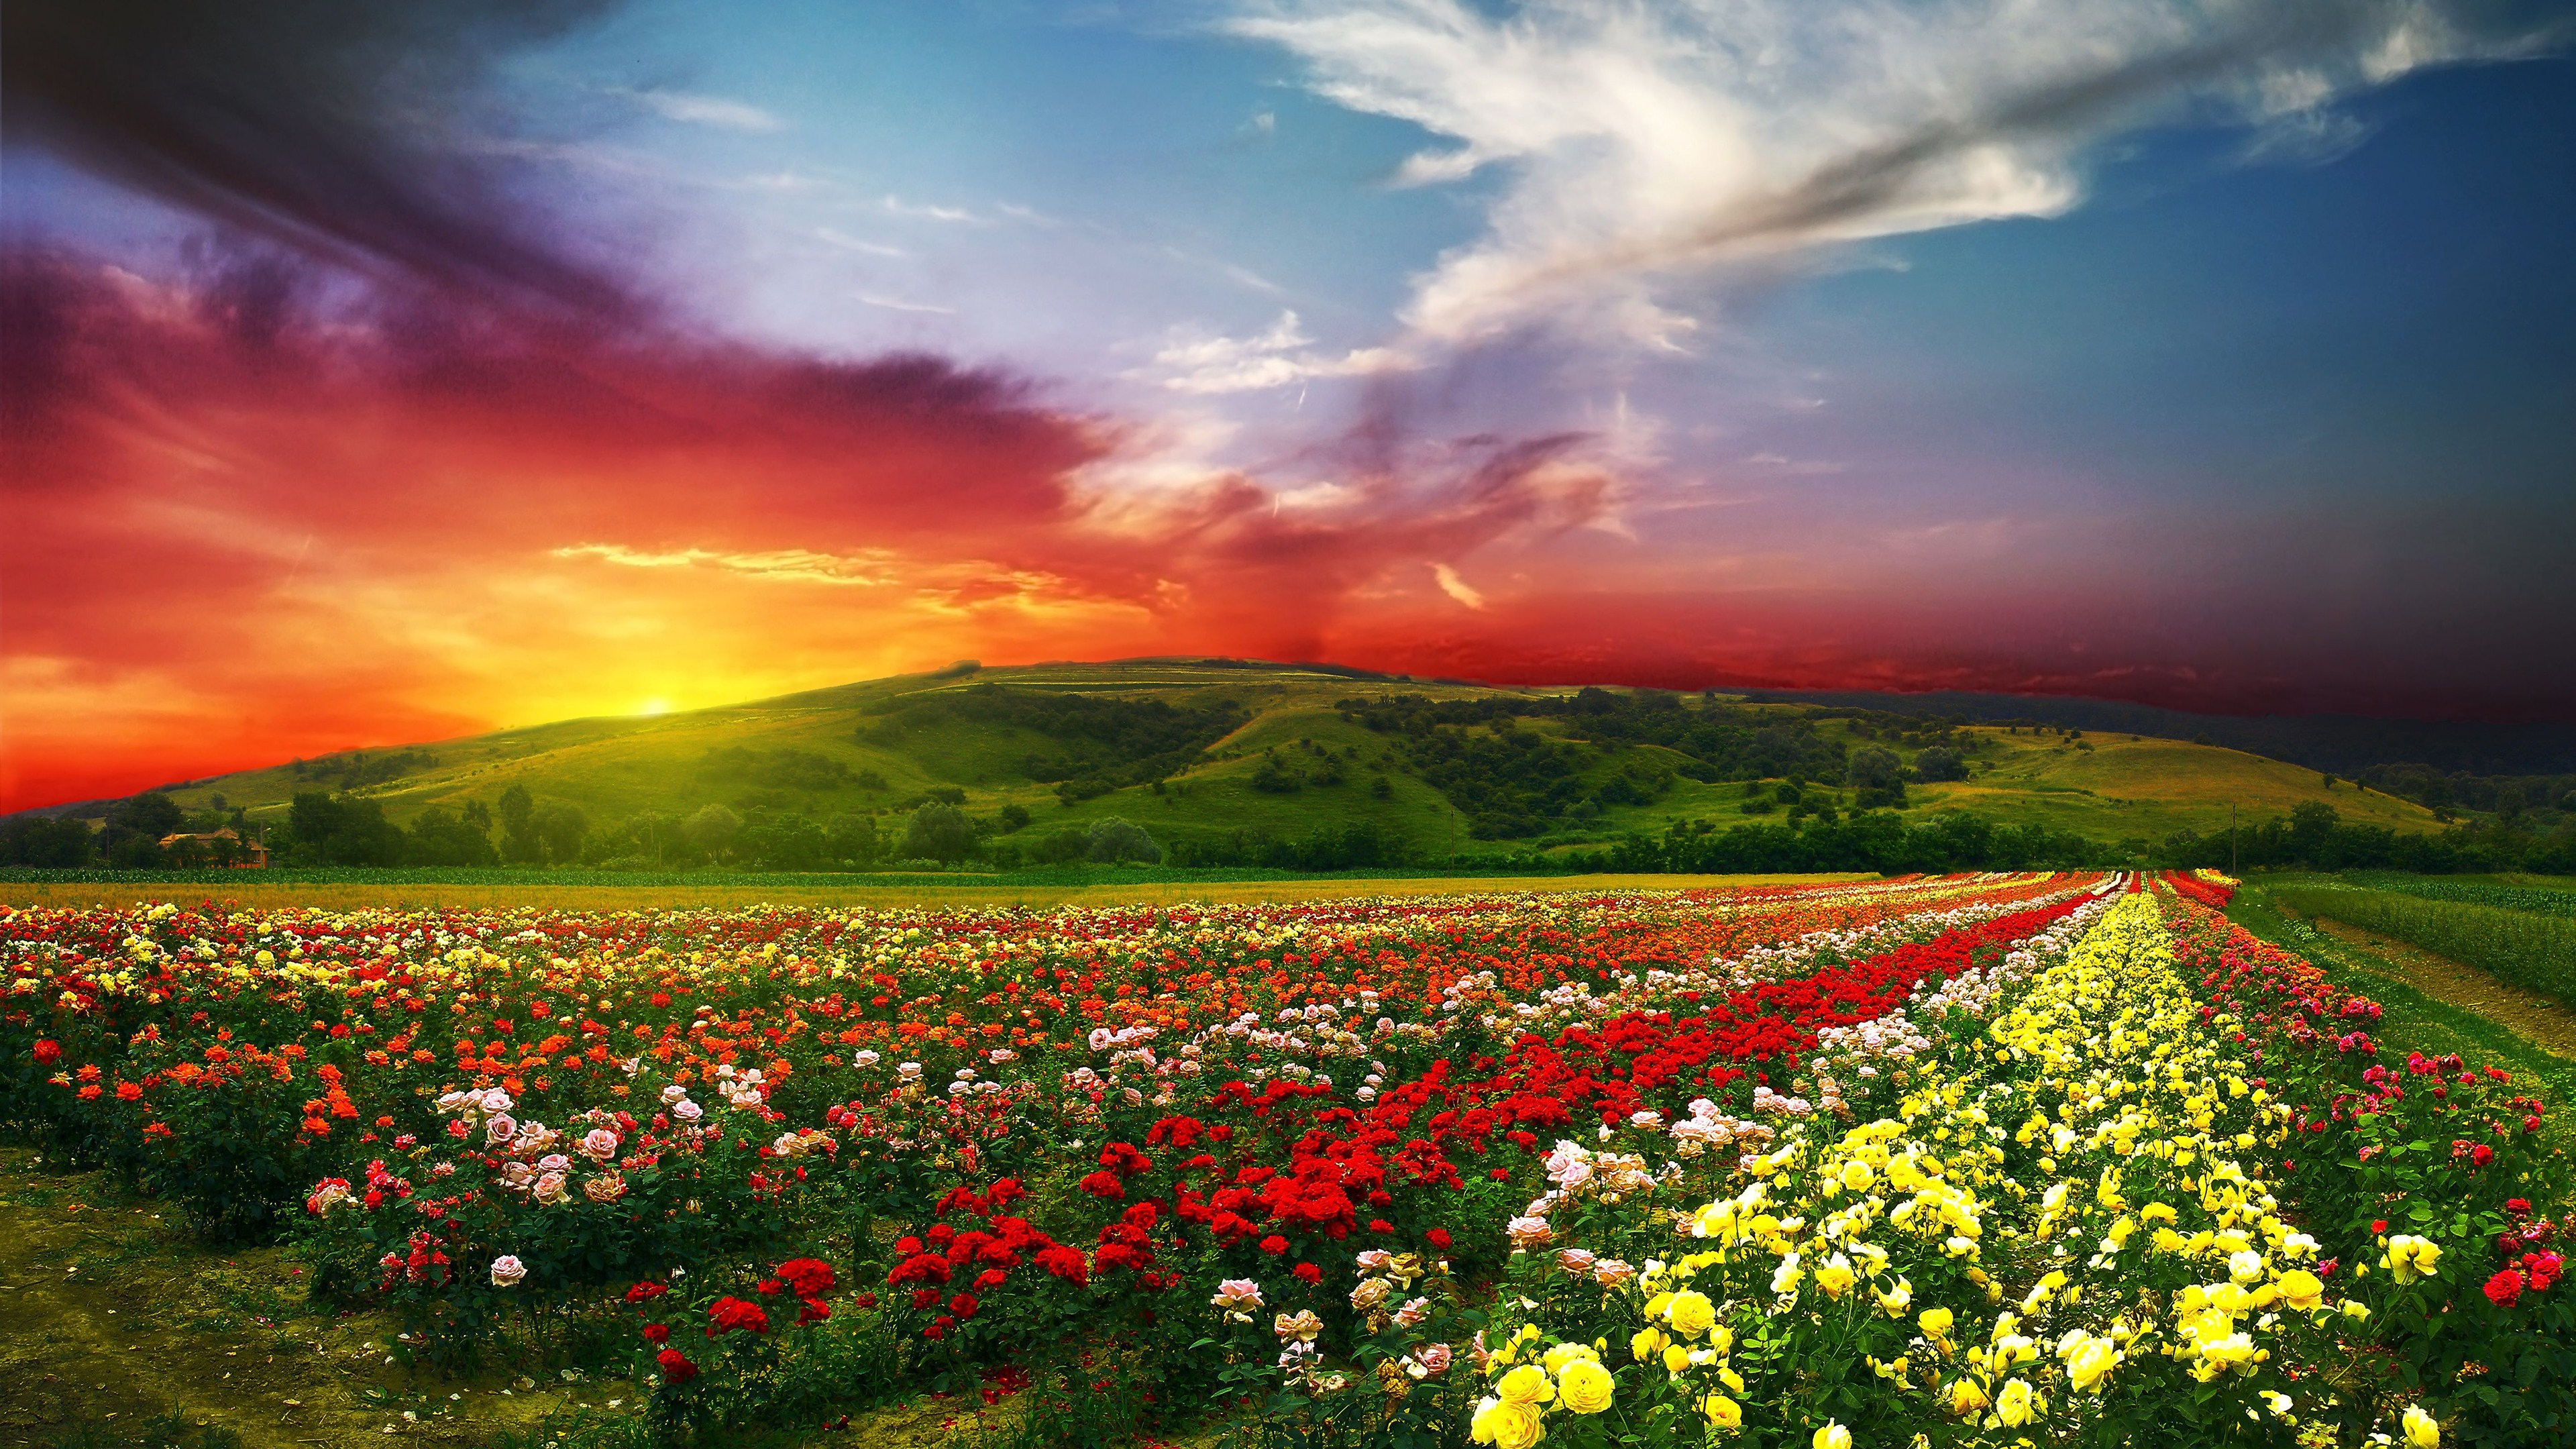 Flower garden 4k ultra hd wallpaper and background image - Colorful nature pics ...